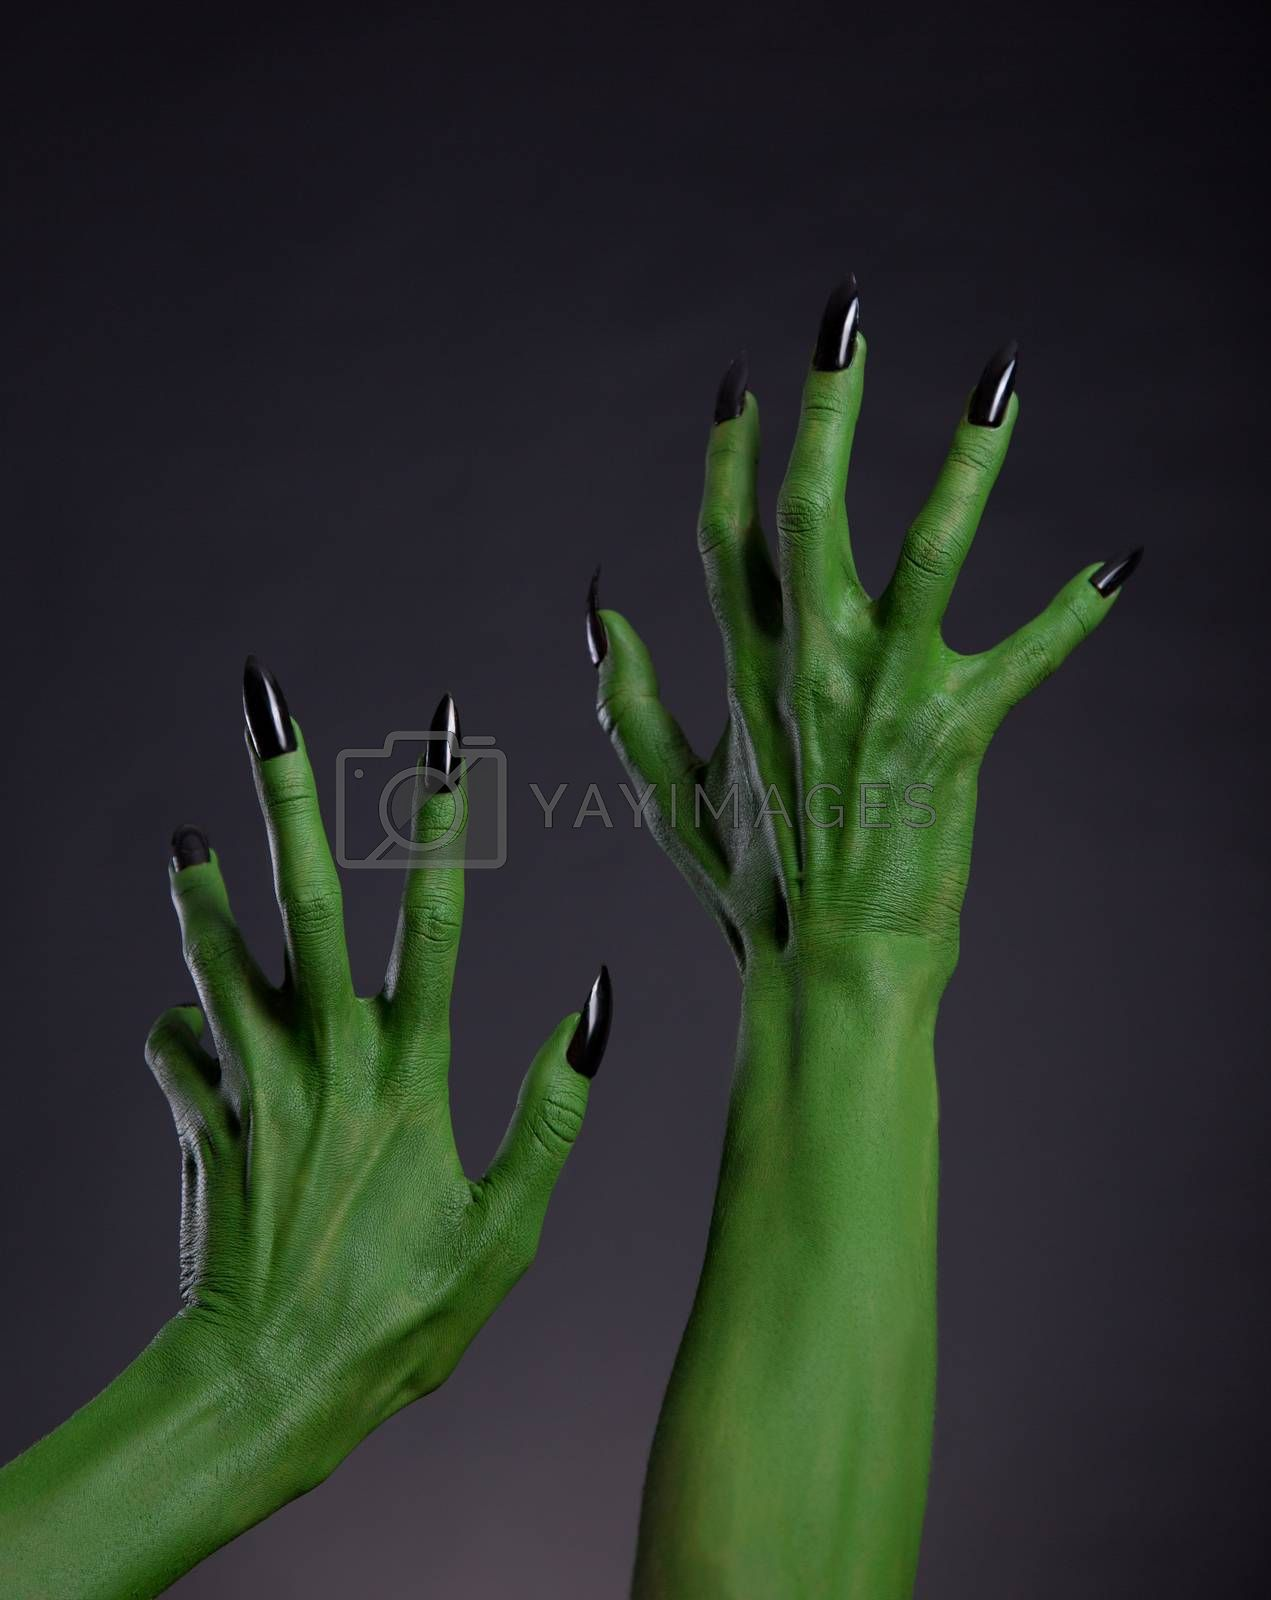 Green witch hands with black nails stretching up, Halloween theme, studio shot on black background